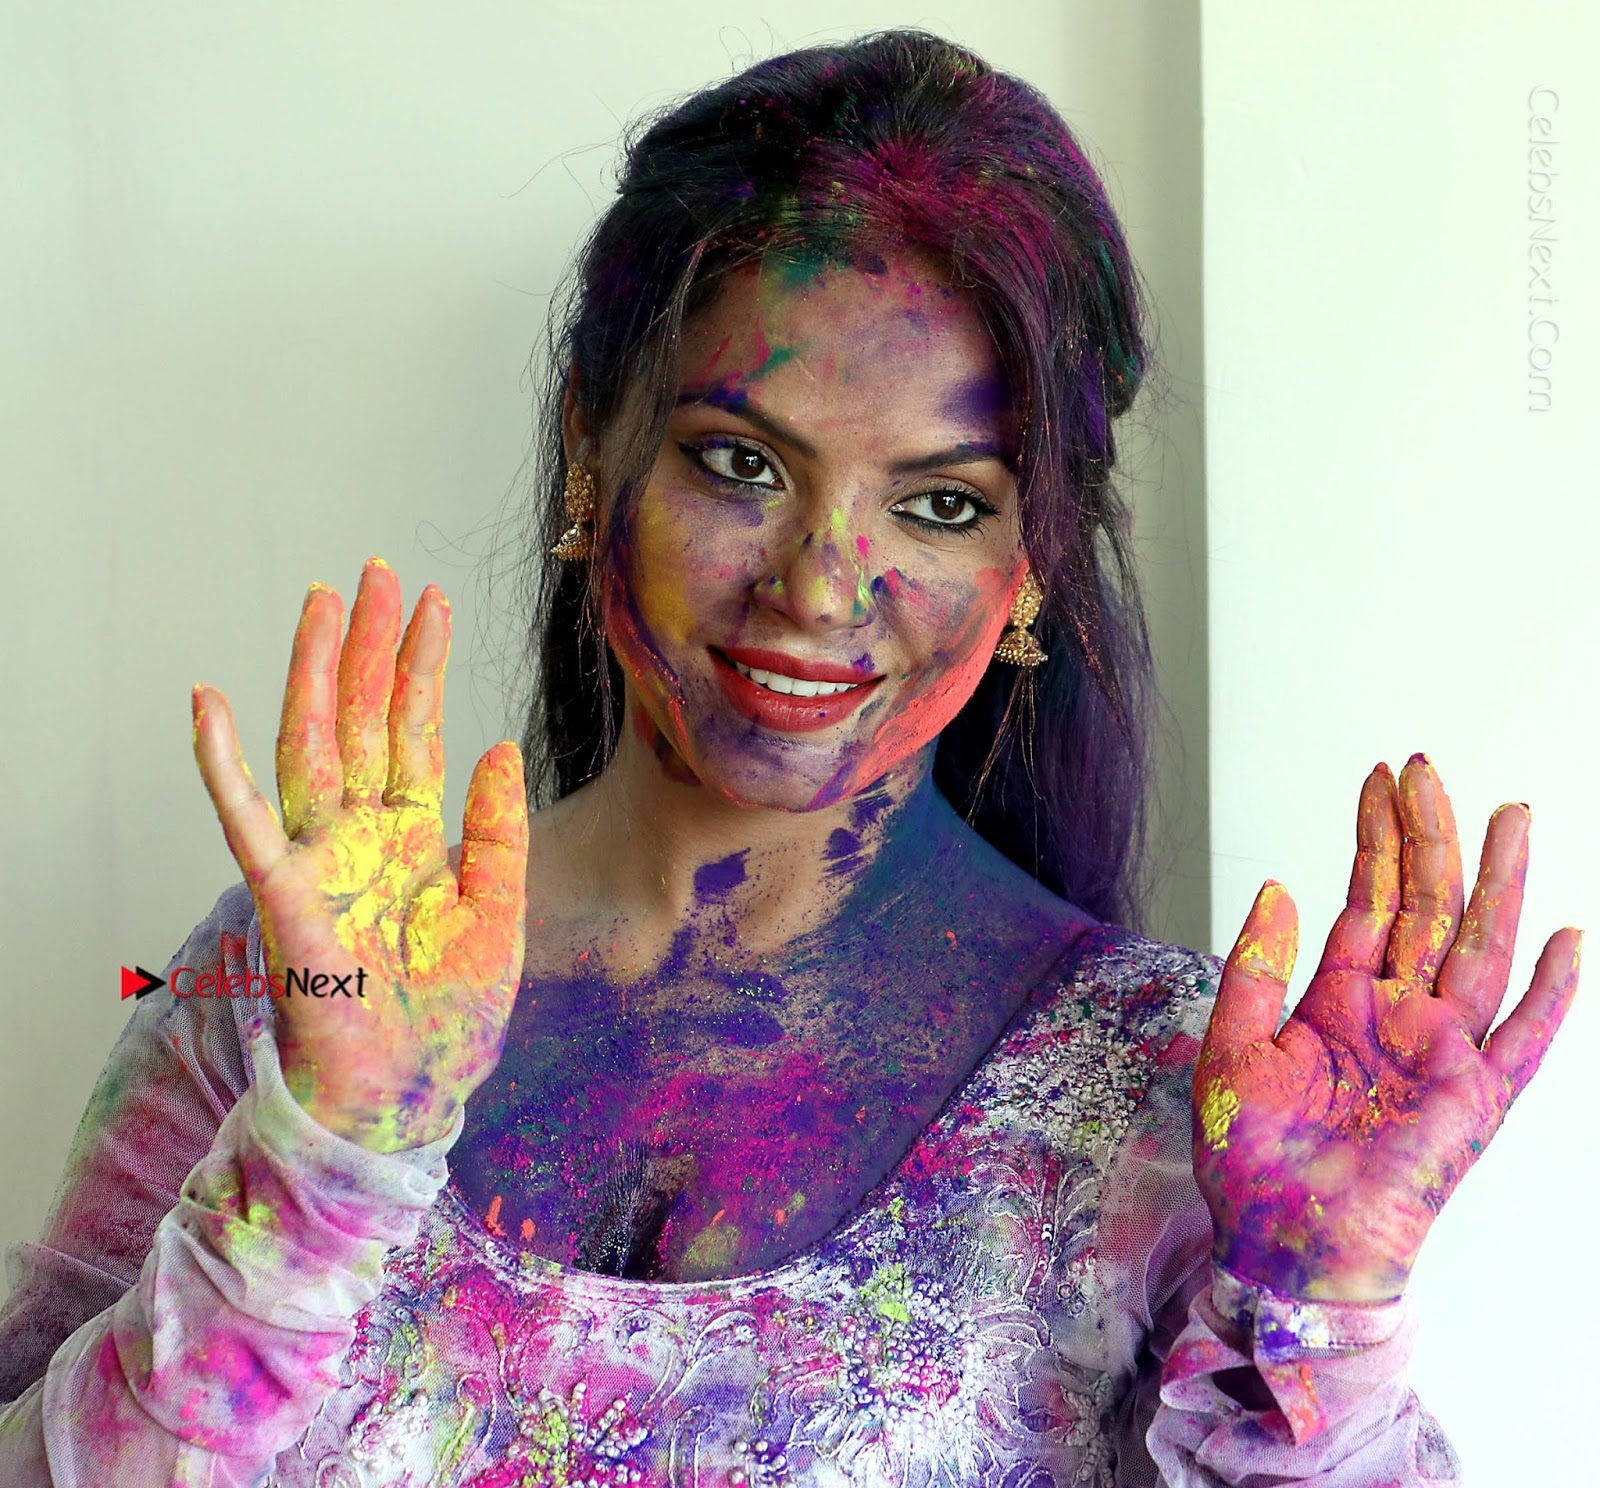 Neetu Chandra Special Photo Shoot Gallery in a Dry Holi Celebration